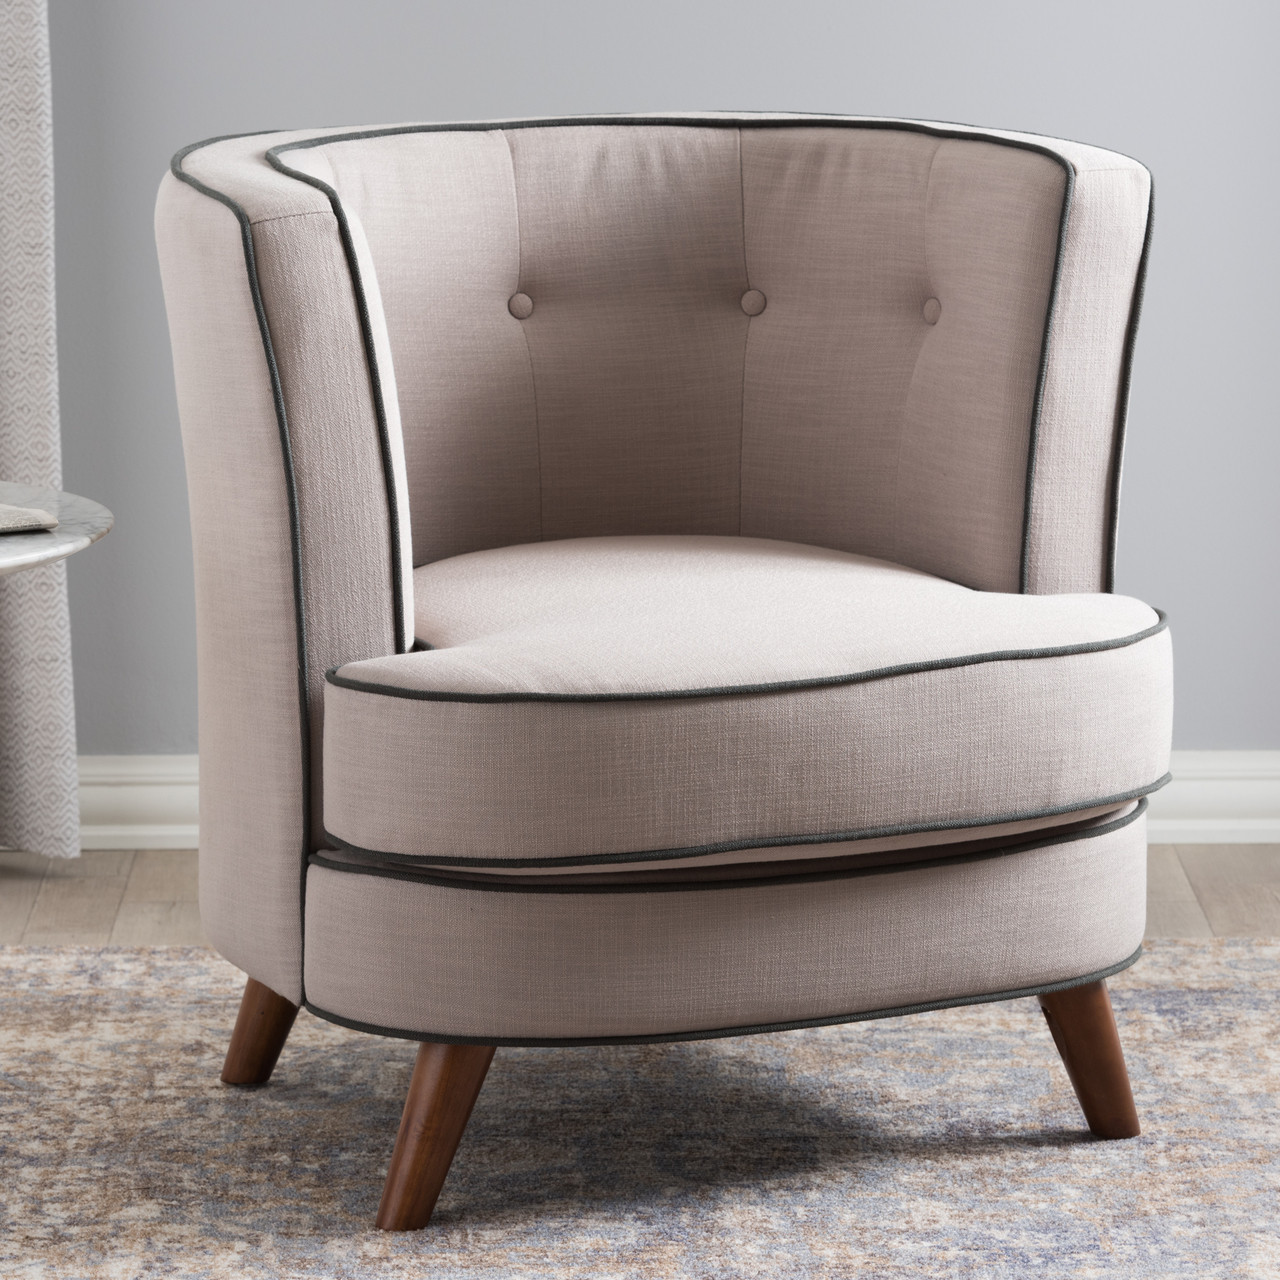 Groovy Baxton Studio Albany Mid Century Modern Beige Fabric Upholstered Walnut Wood Button Tufted Accent Chair Ibusinesslaw Wood Chair Design Ideas Ibusinesslaworg